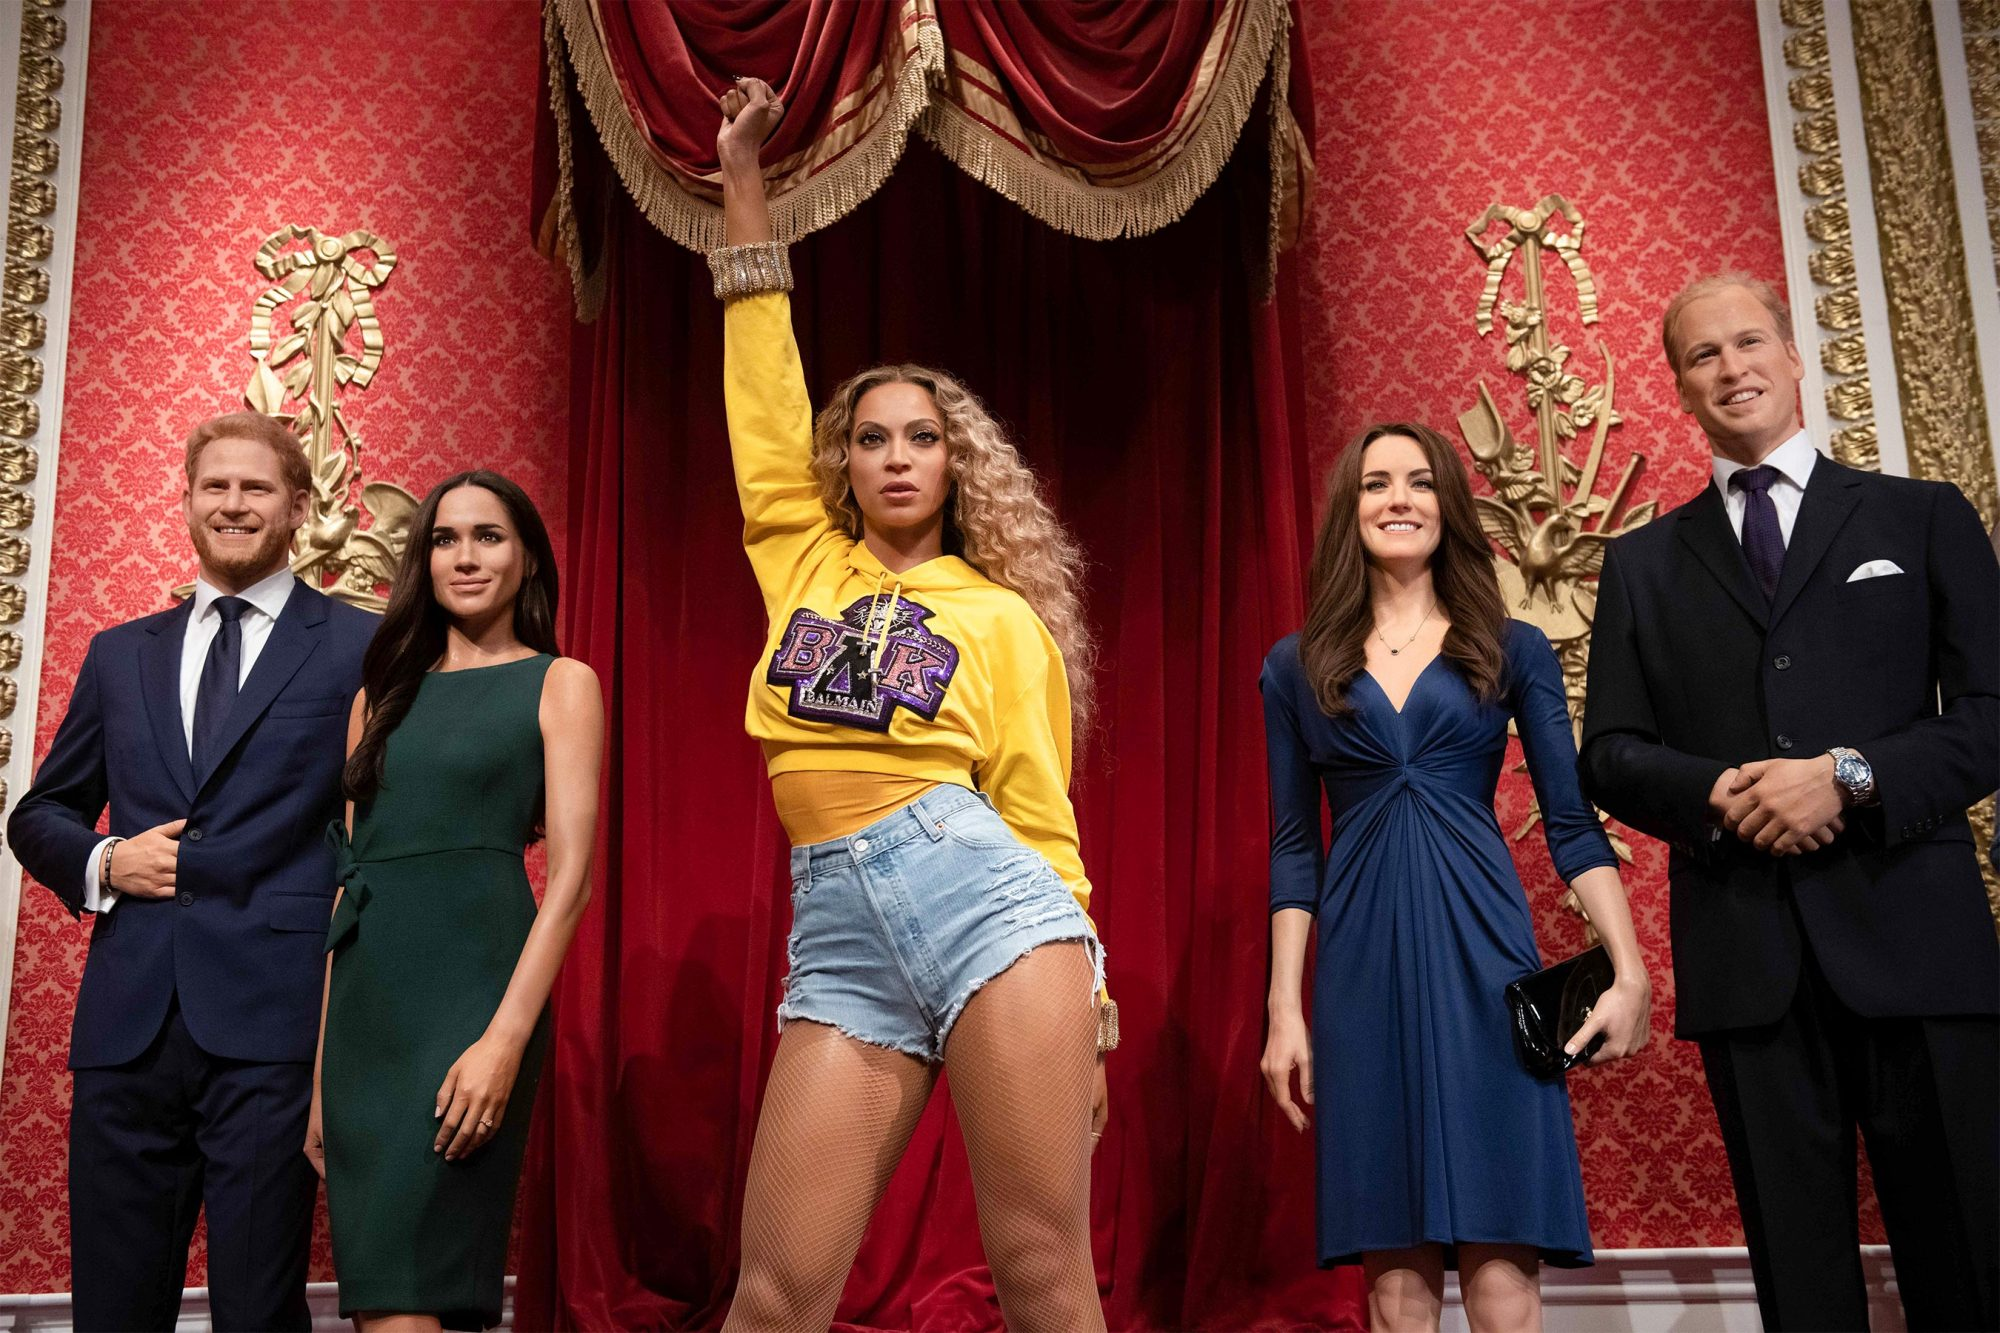 Queen Bey moves in with the Royals at Madame Tussauds London: the Homecoming star's new figure will steal The Queen's crown to mark launch day before taking centre stage in the world-famous attraction's music zone on Friday 20th September. Tickets available at www.madametussauds.com/london